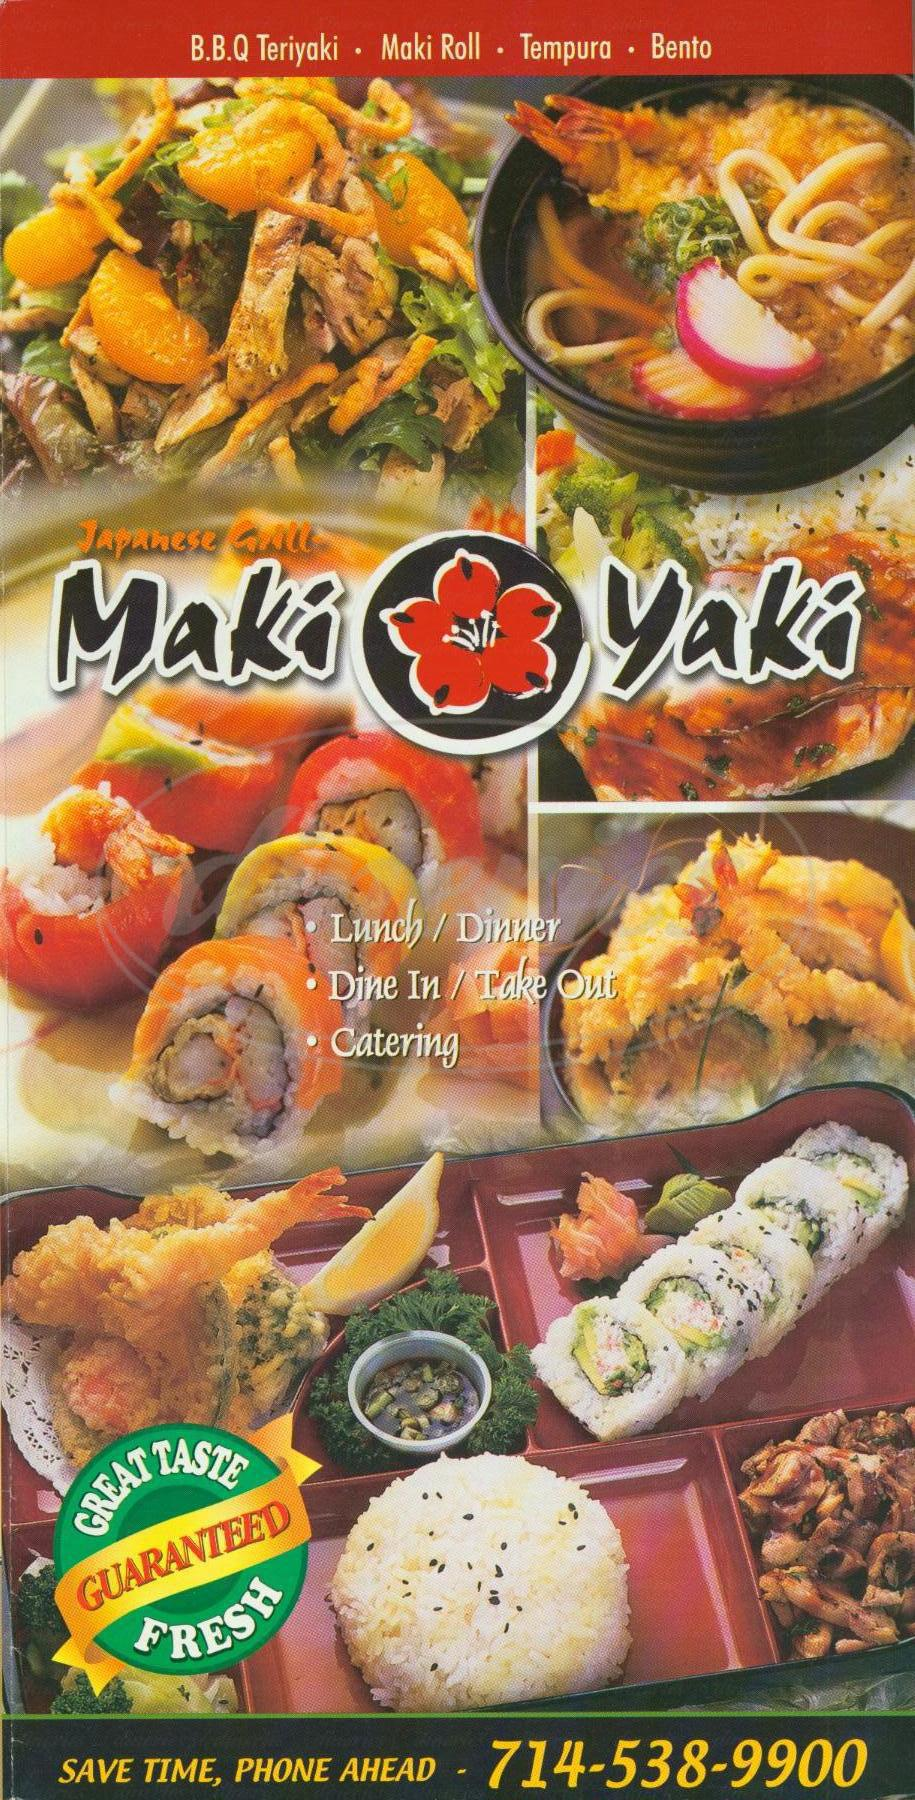 menu for Maki Yaki